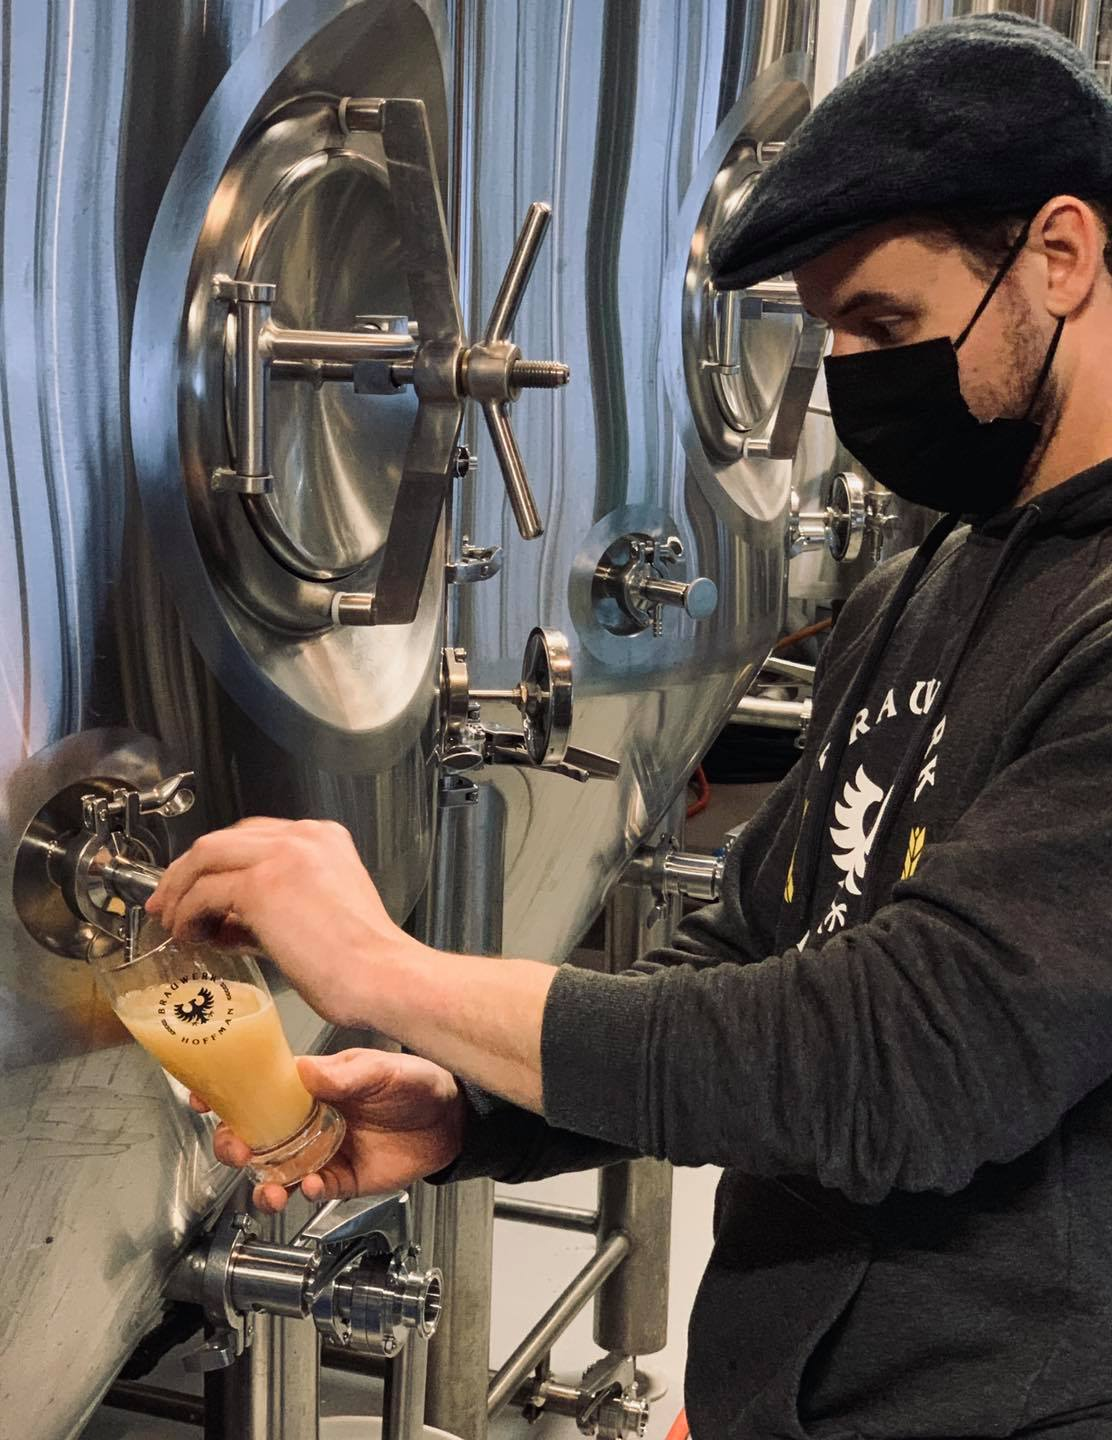 Brauwerk Hoffman Rockland Brewery pouring a beer for tasting